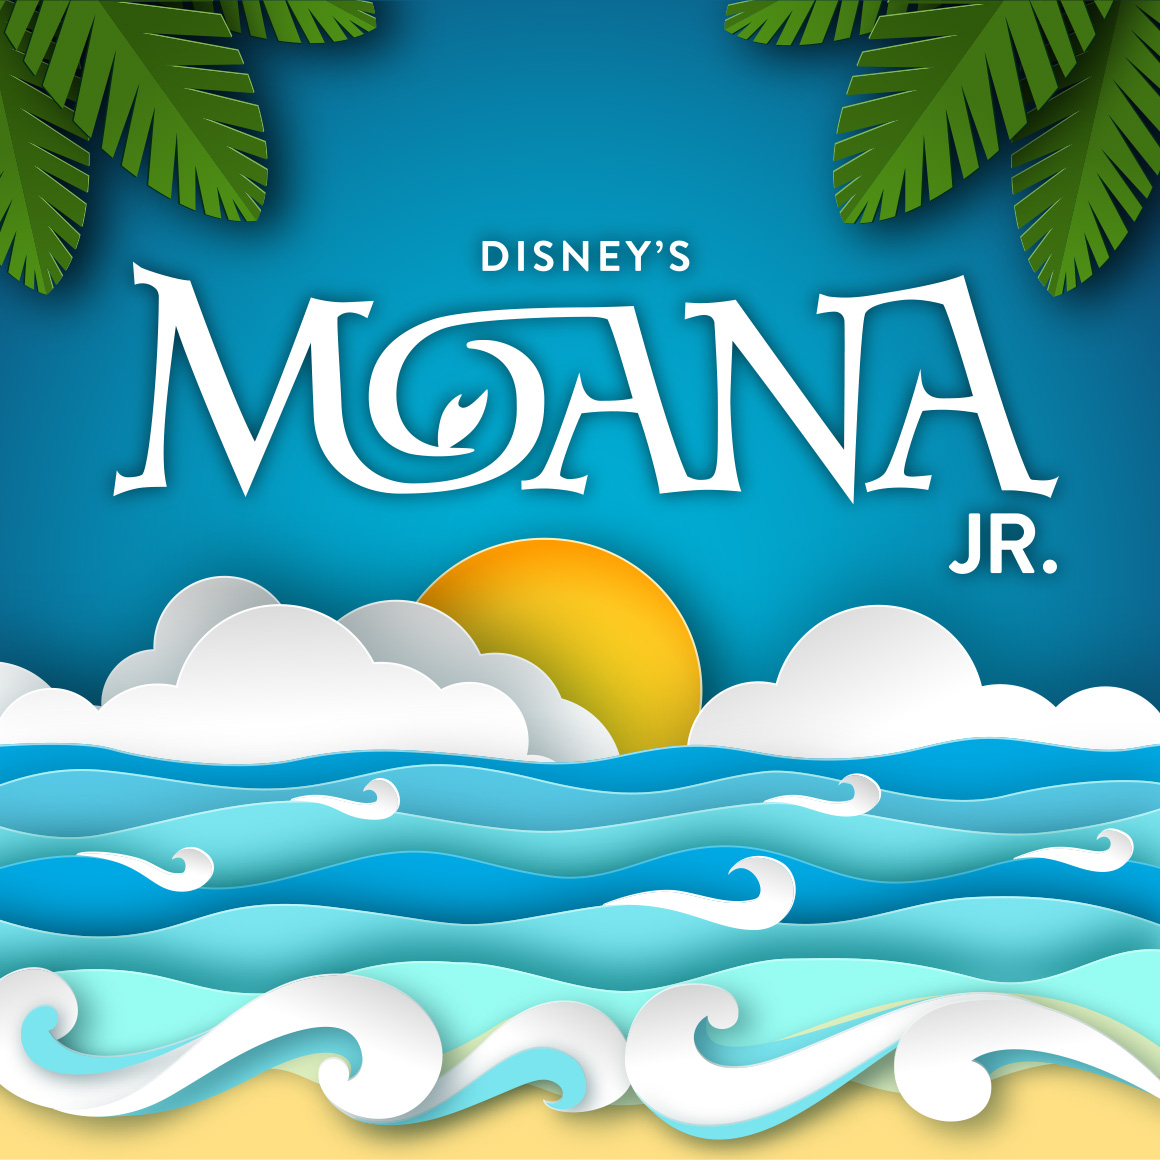 Disneys-Moana-Jr-logo